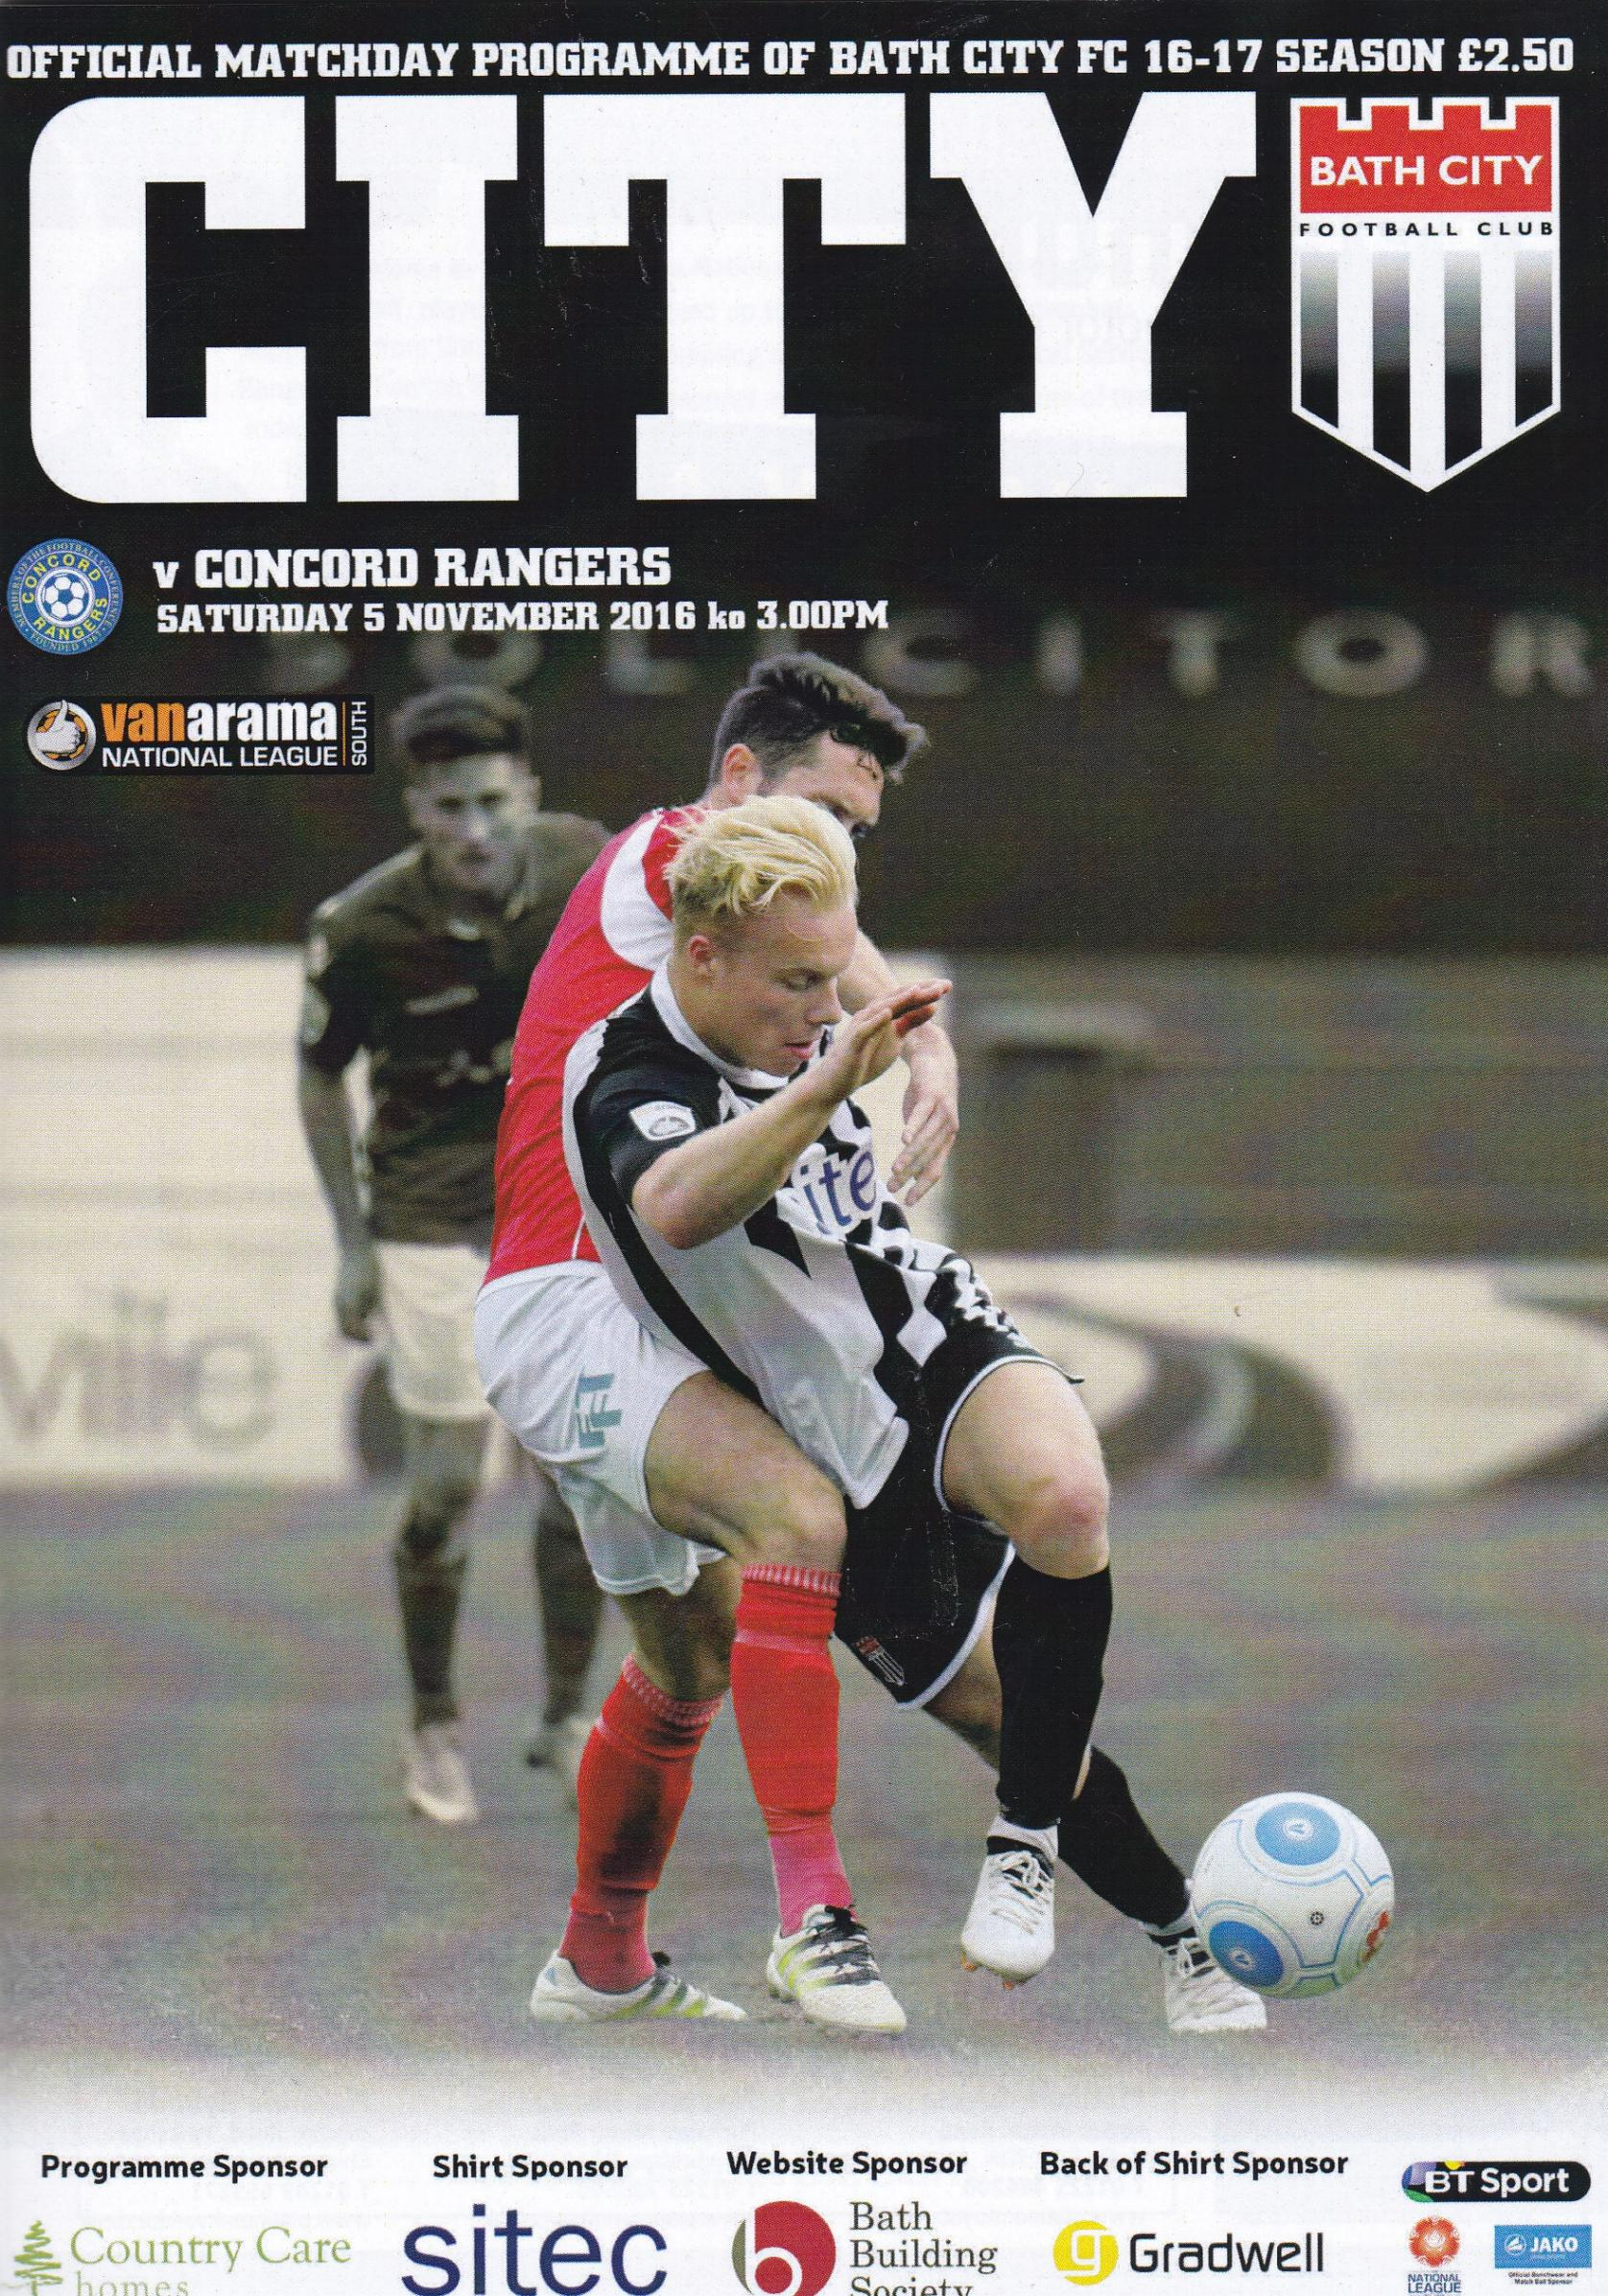 BATH CITY v CONCORD RANGERS 2016/17